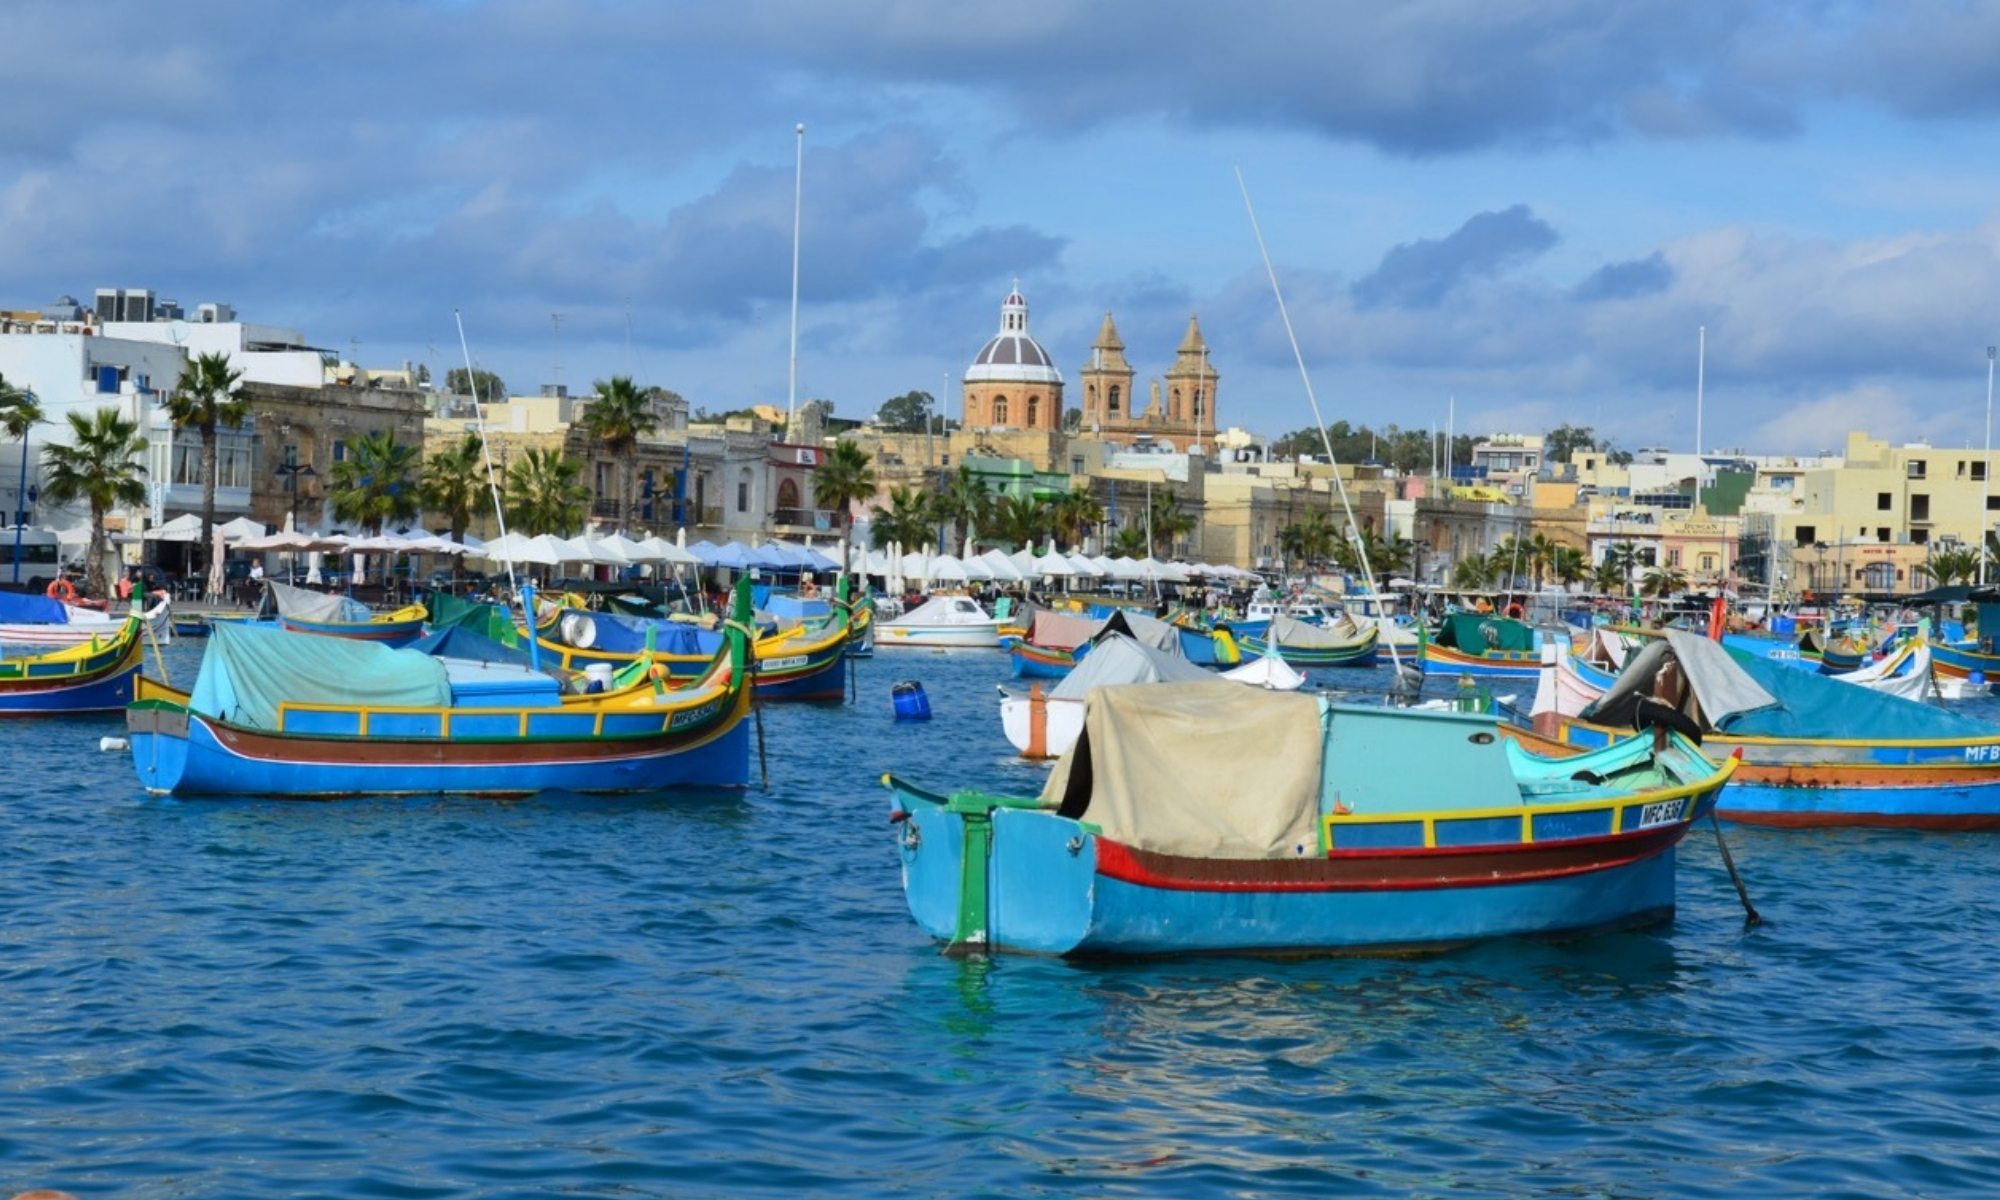 Colorful boats bob in the water off near the fishing town of Marsaxlokk, Malta.